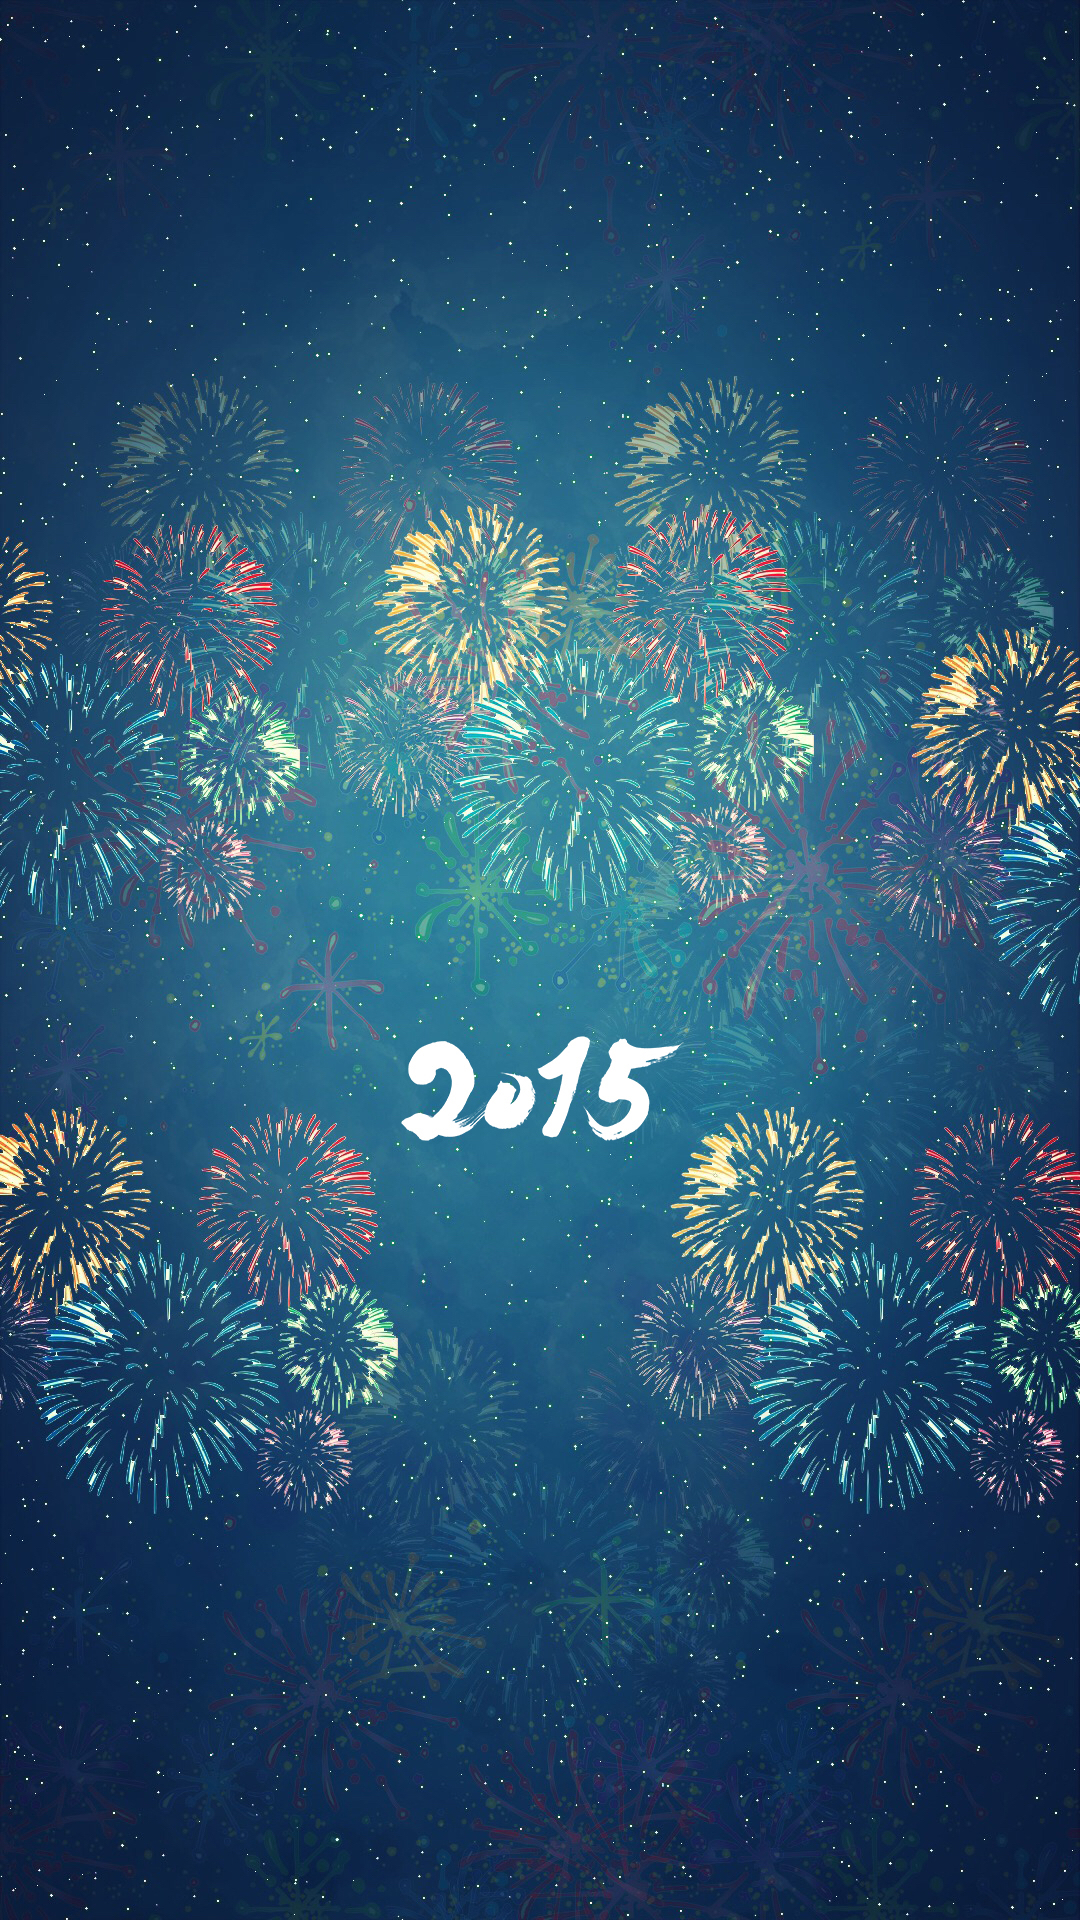 Happy new year 2015 wallpapers for iPhone and iPad 1080x1920